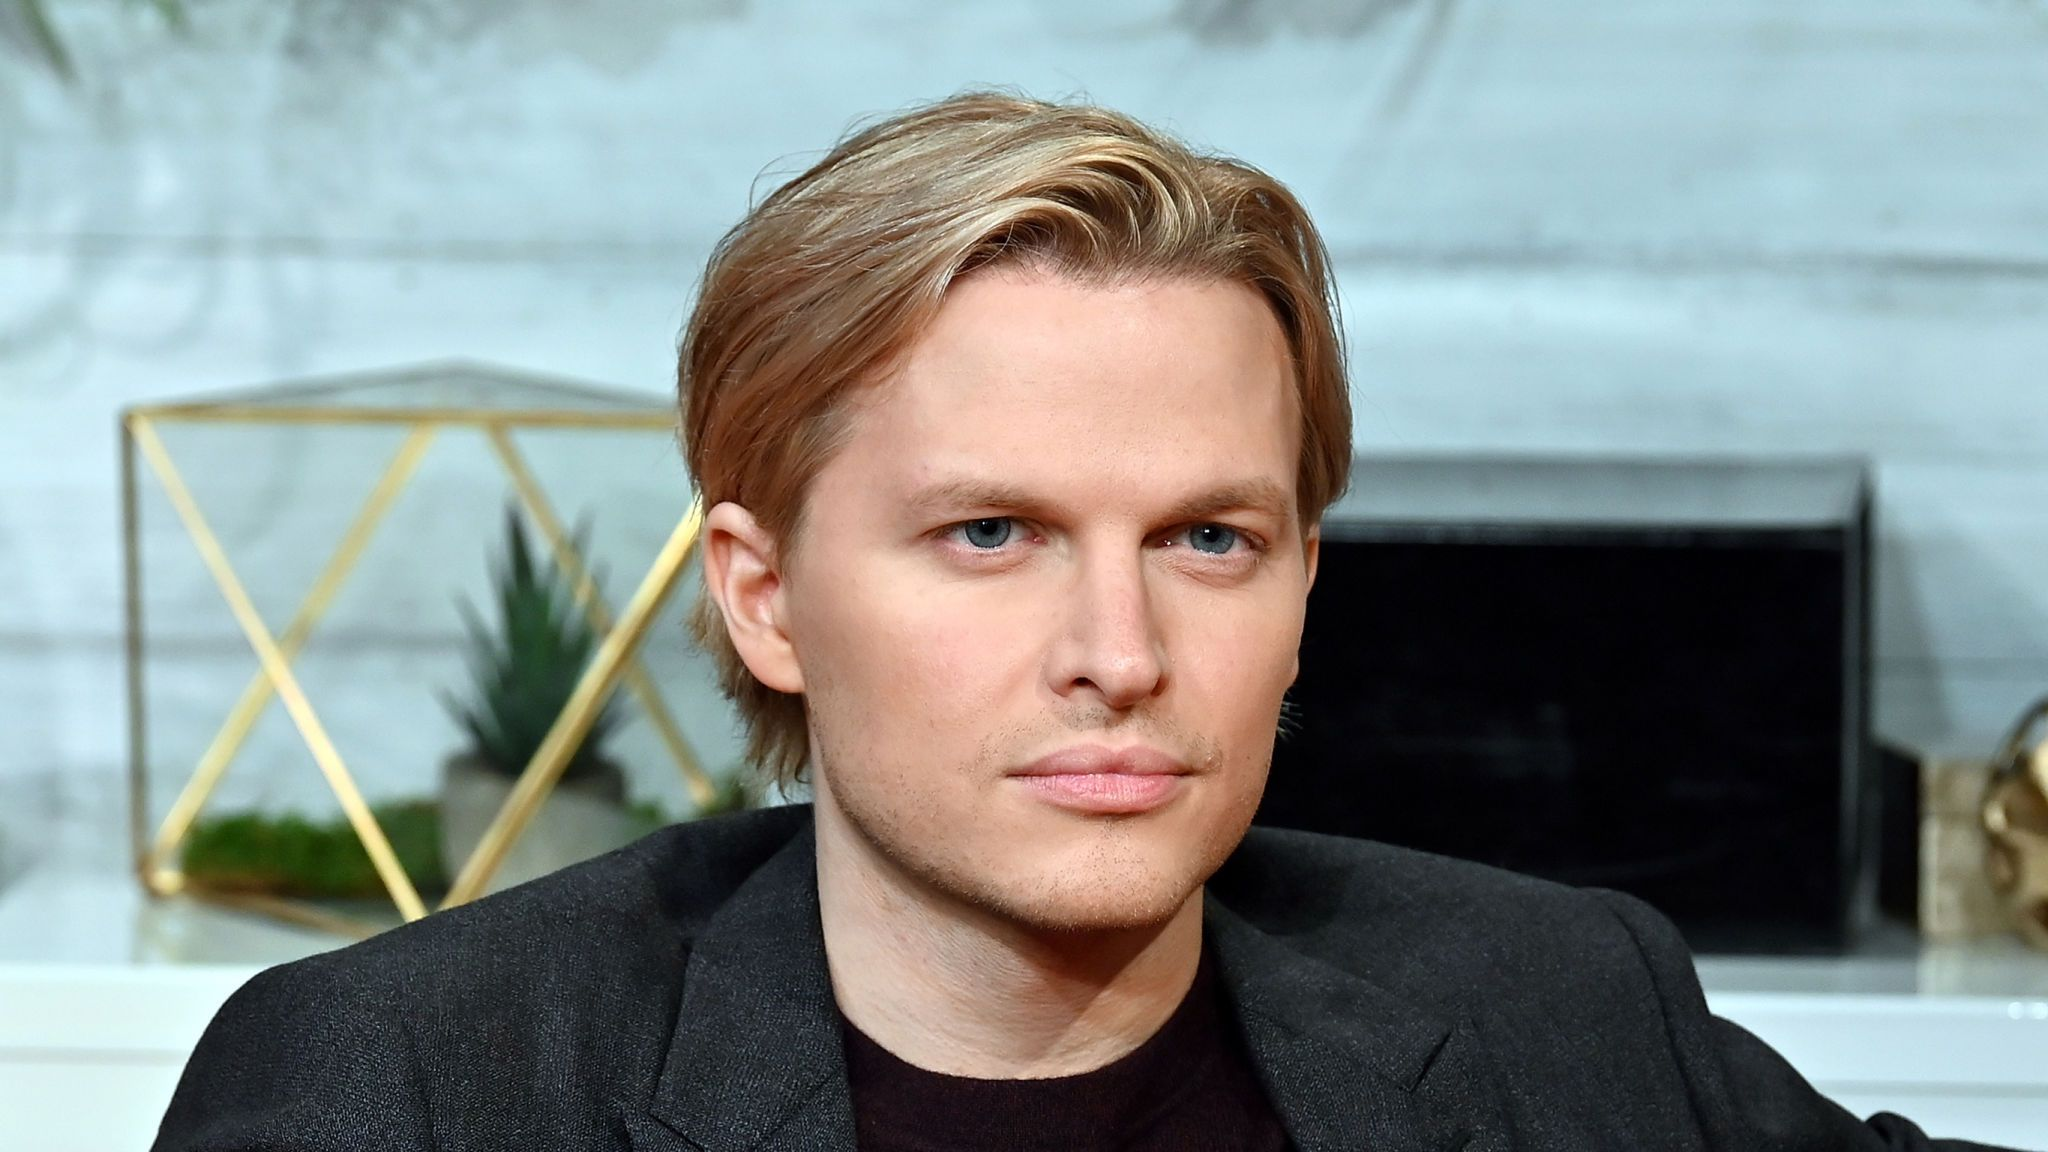 """NEW YORK, NY - OCTOBER 15: (EXCLUSIVE COVERAGE) Pulitzer Prize-winning investigative journalist Ronan Farrow visits BuzzFeed's """"AM To DM"""" to discuss his book """"Catch And Kill"""" on October 15, 2019 in New York City. (Photo by Slaven Vlasic/Getty Images)"""